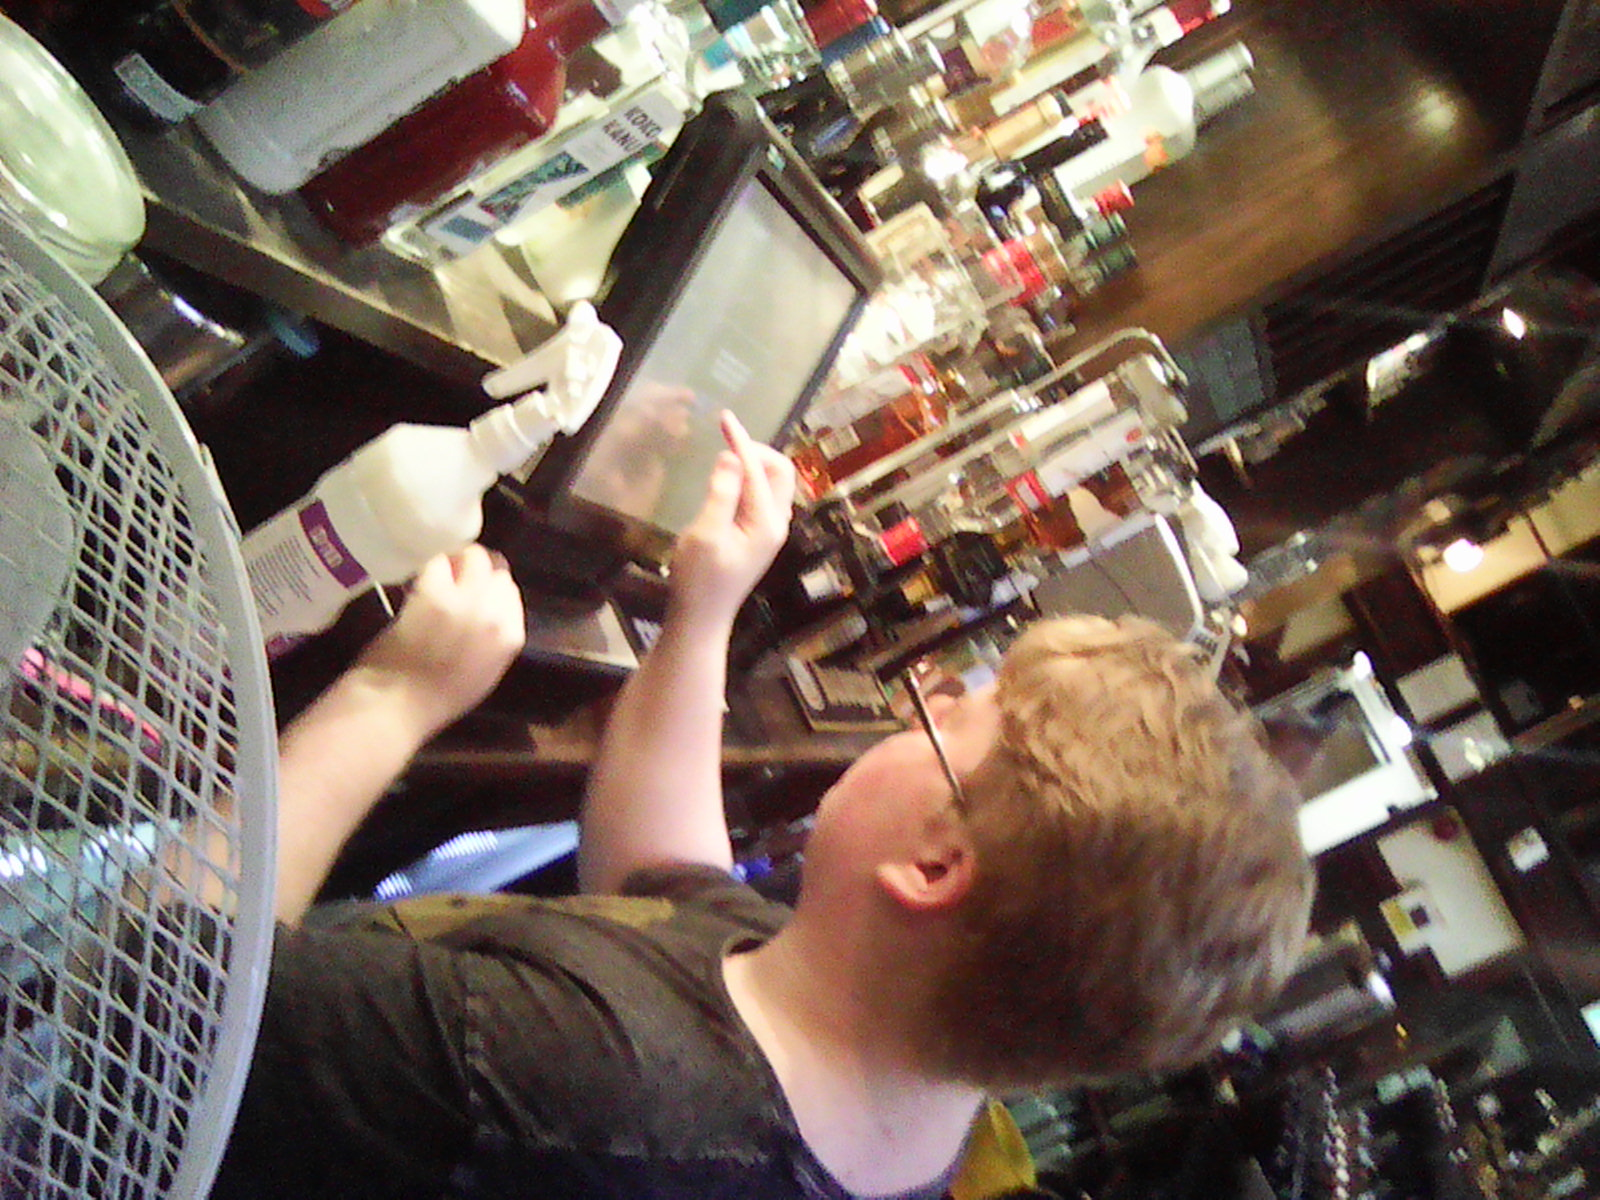 Matthew operates a touch screen till behind a bar